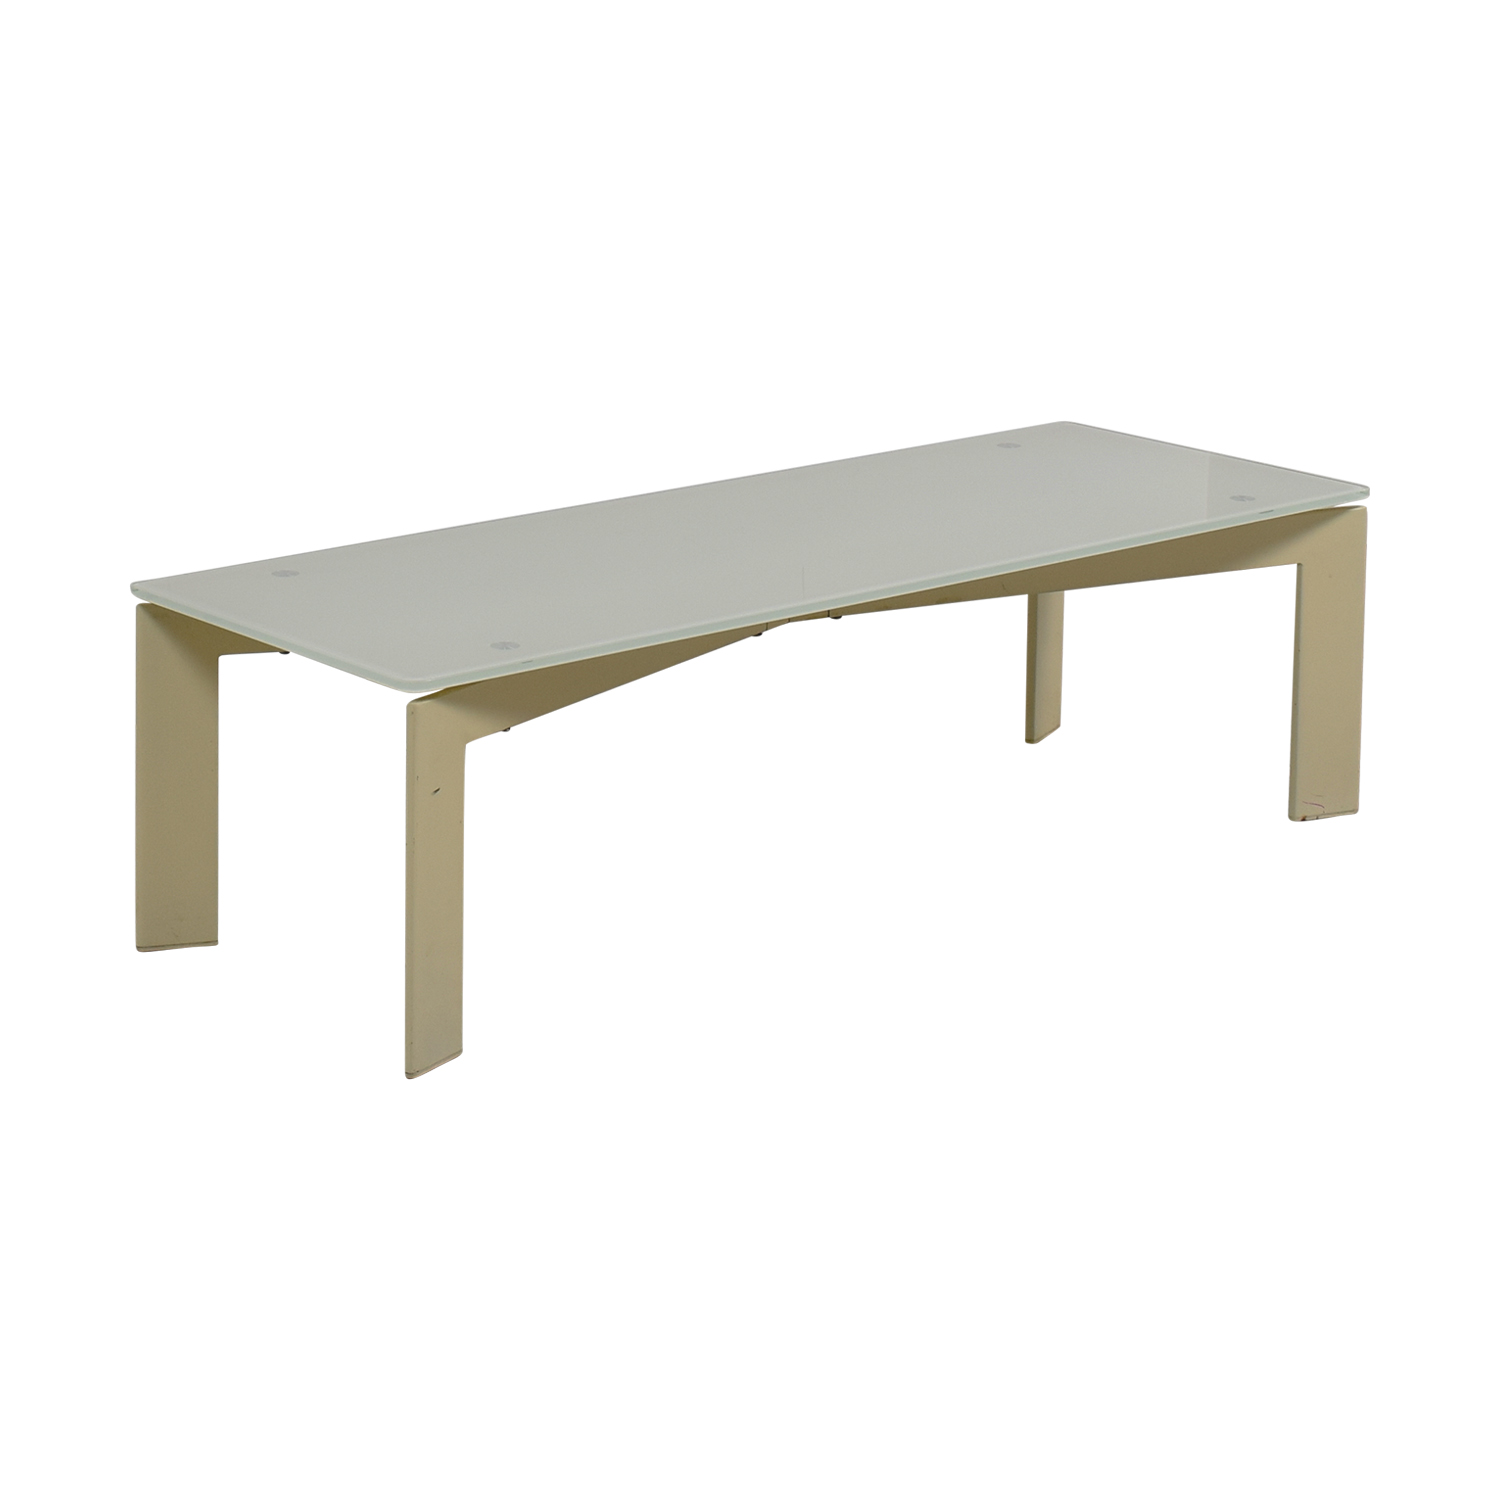 79 off white and beige coffee table tables for Tables for coffee shop